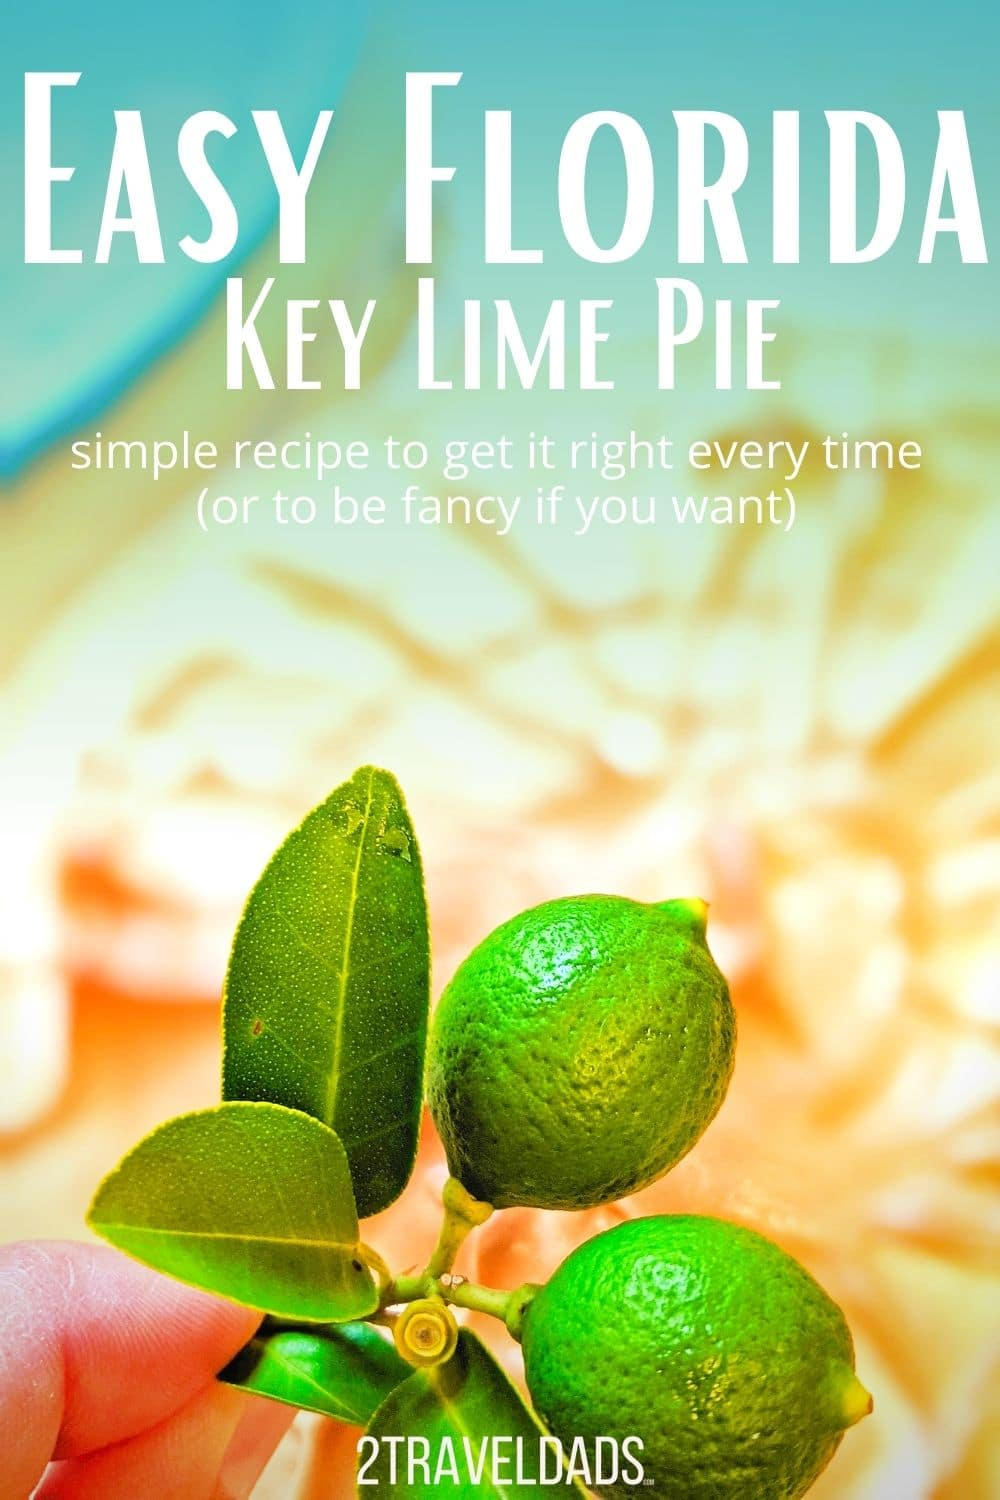 This is the easiest key lime pie recipe around, with easy, delicious options to make it even better than a basic one. After trying many key lime pies and making several, this recipe is the best for a new baker or somebody who's easily distracted.